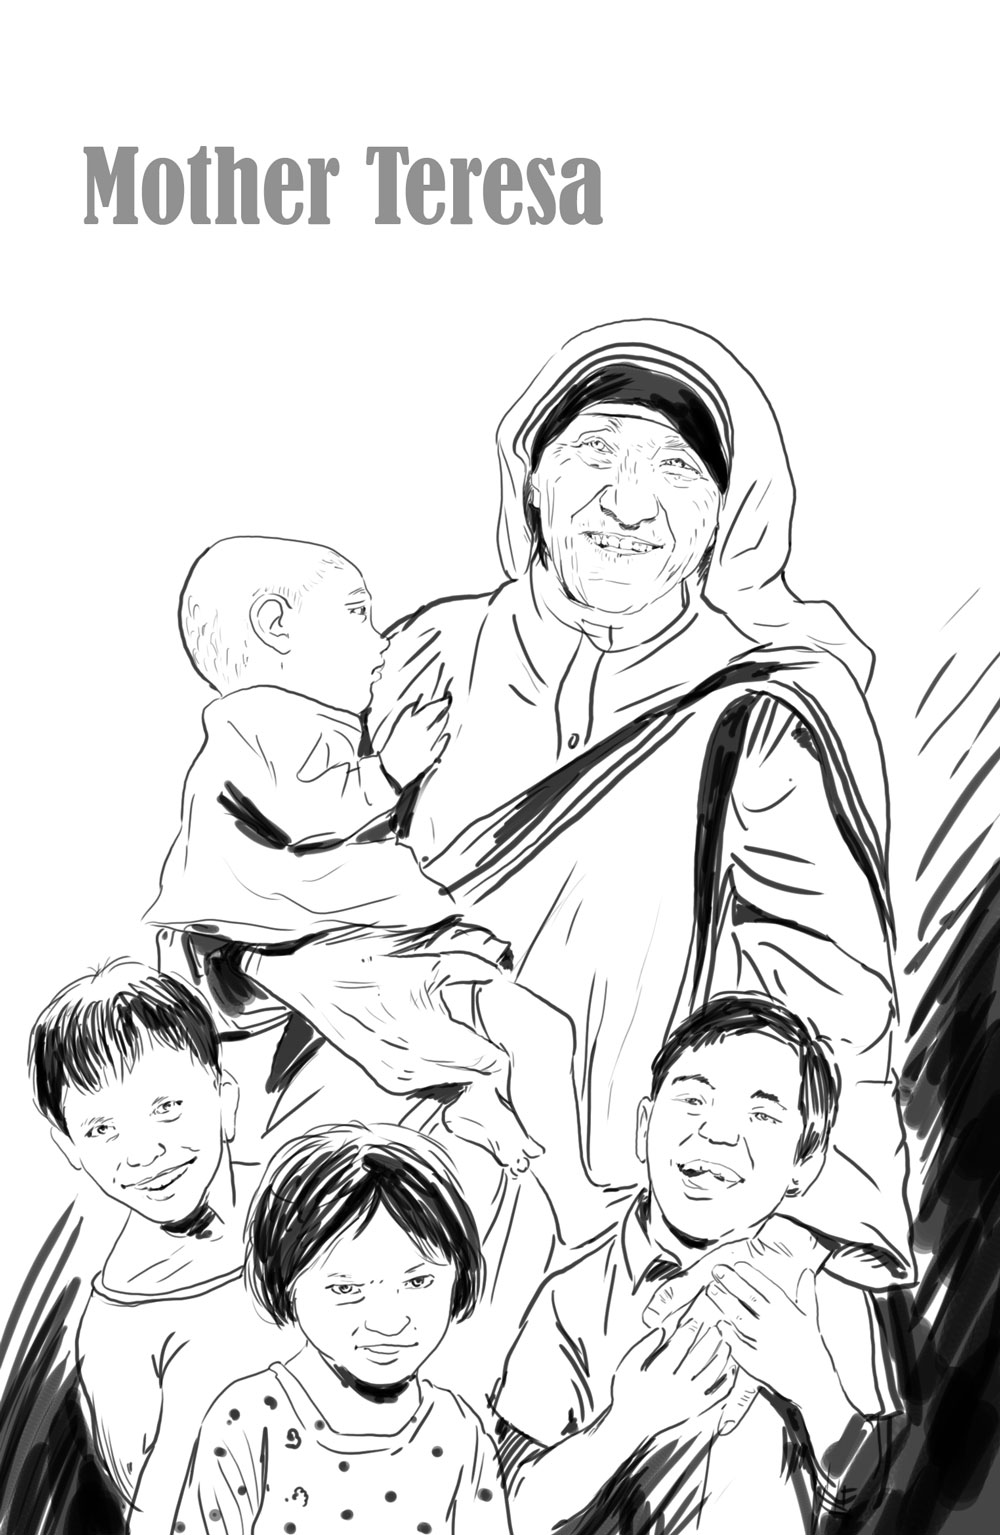 Saints coloring pages for Mother teresa coloring page